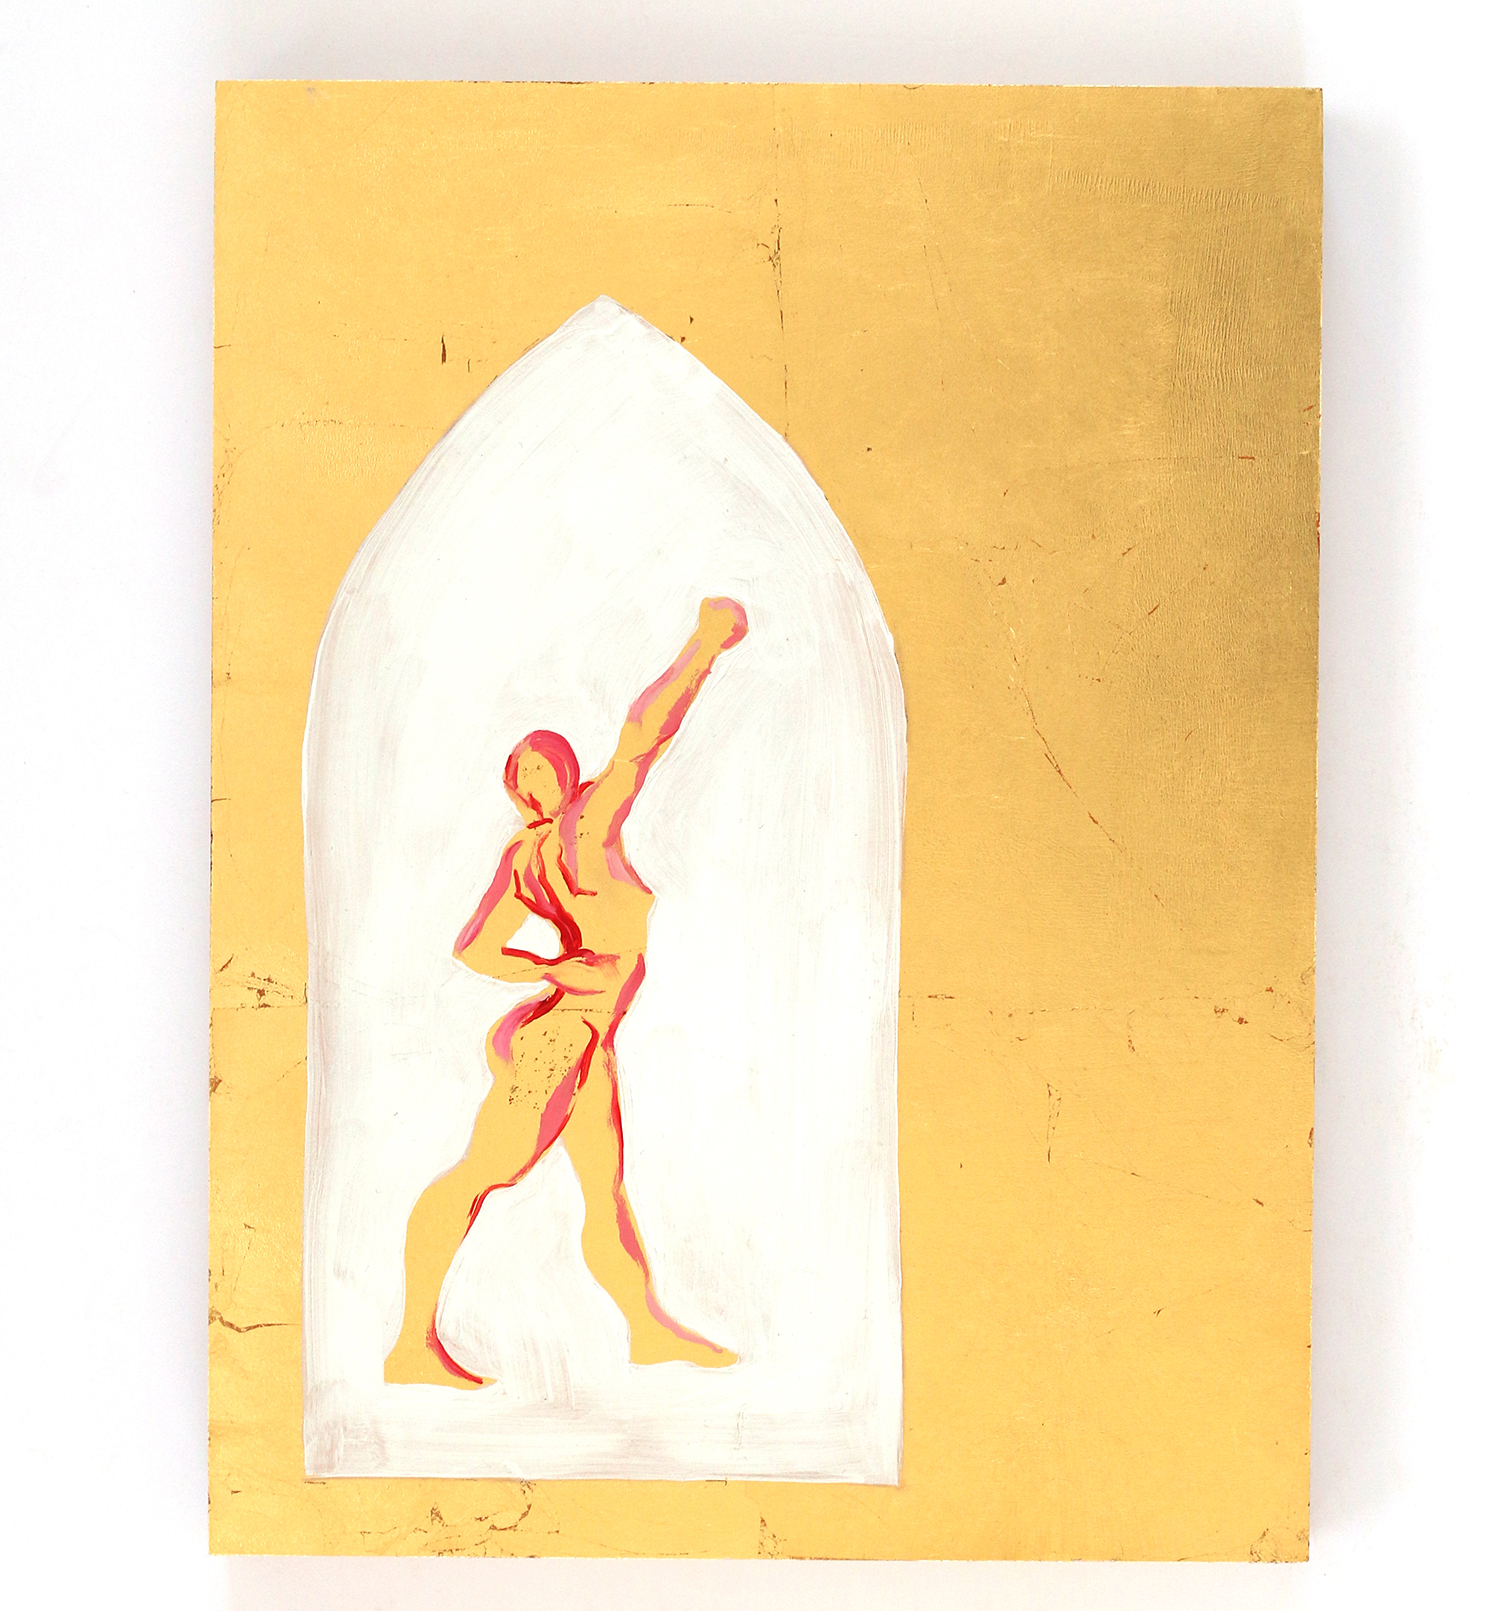 female figure white arch gold background painting by Michelle Arnold Paine